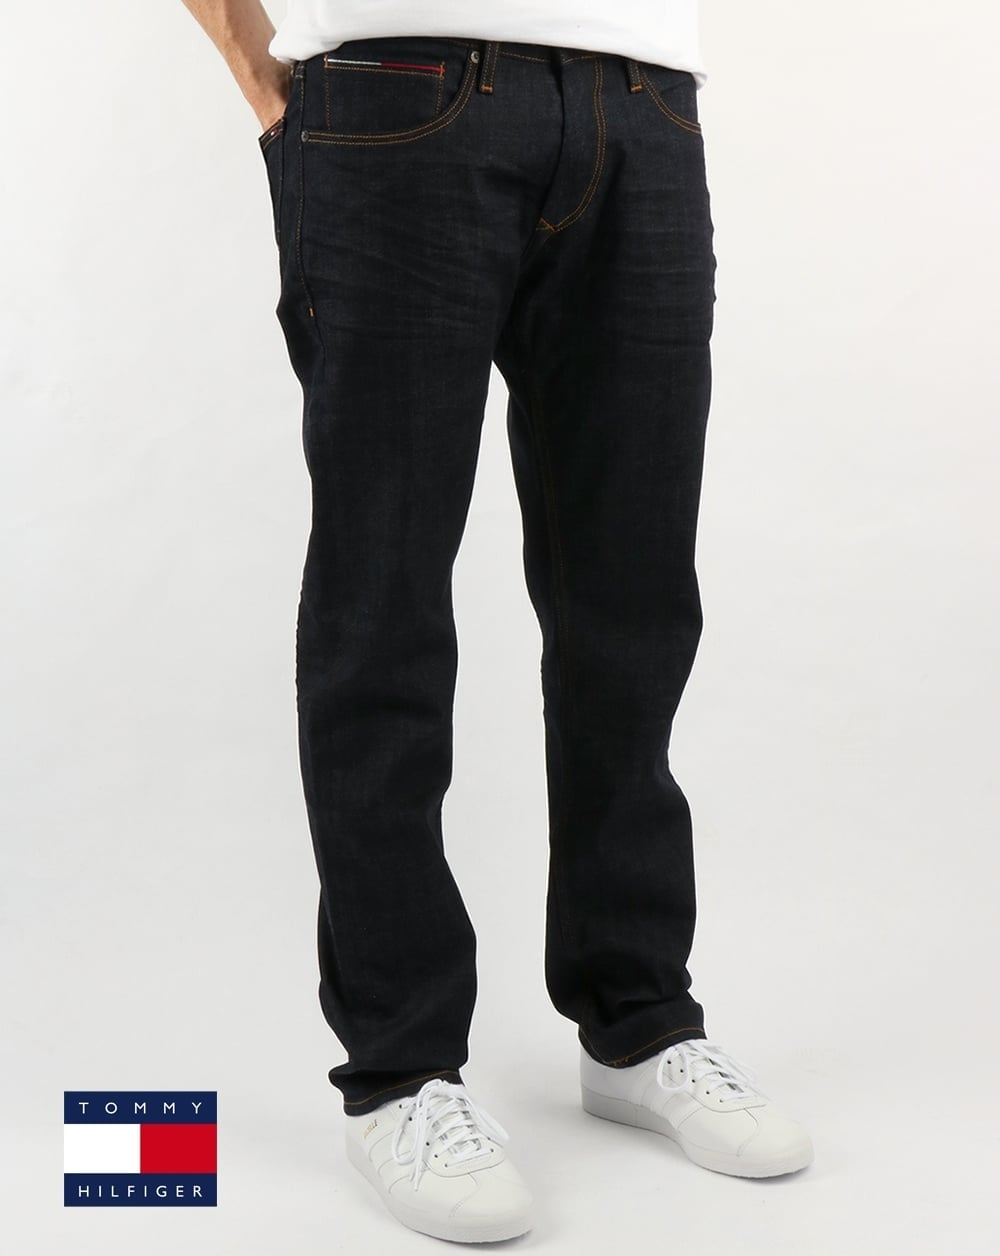 db7a50d5 Tommy Hilfiger Jeans Tommy Hilfiger Ryan Straight Fit Jeans Rinse Comfort